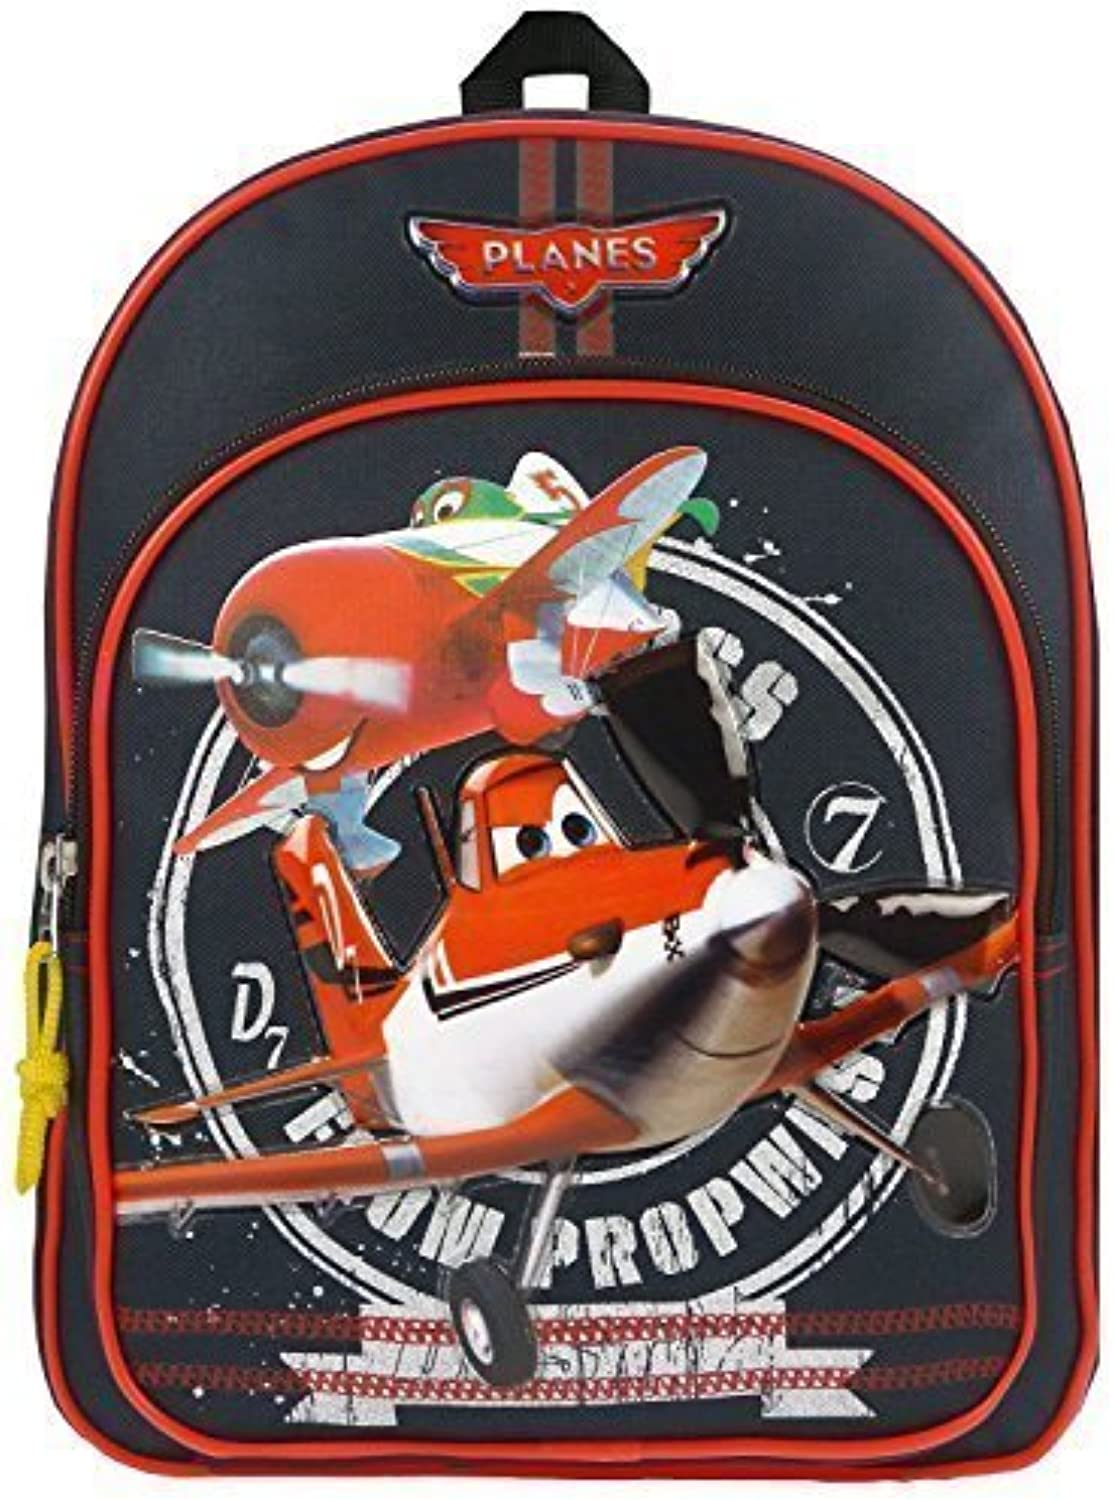 ventas en linea Planes. Disney. Medium Backpack by by by Disney  disfrutando de sus compras